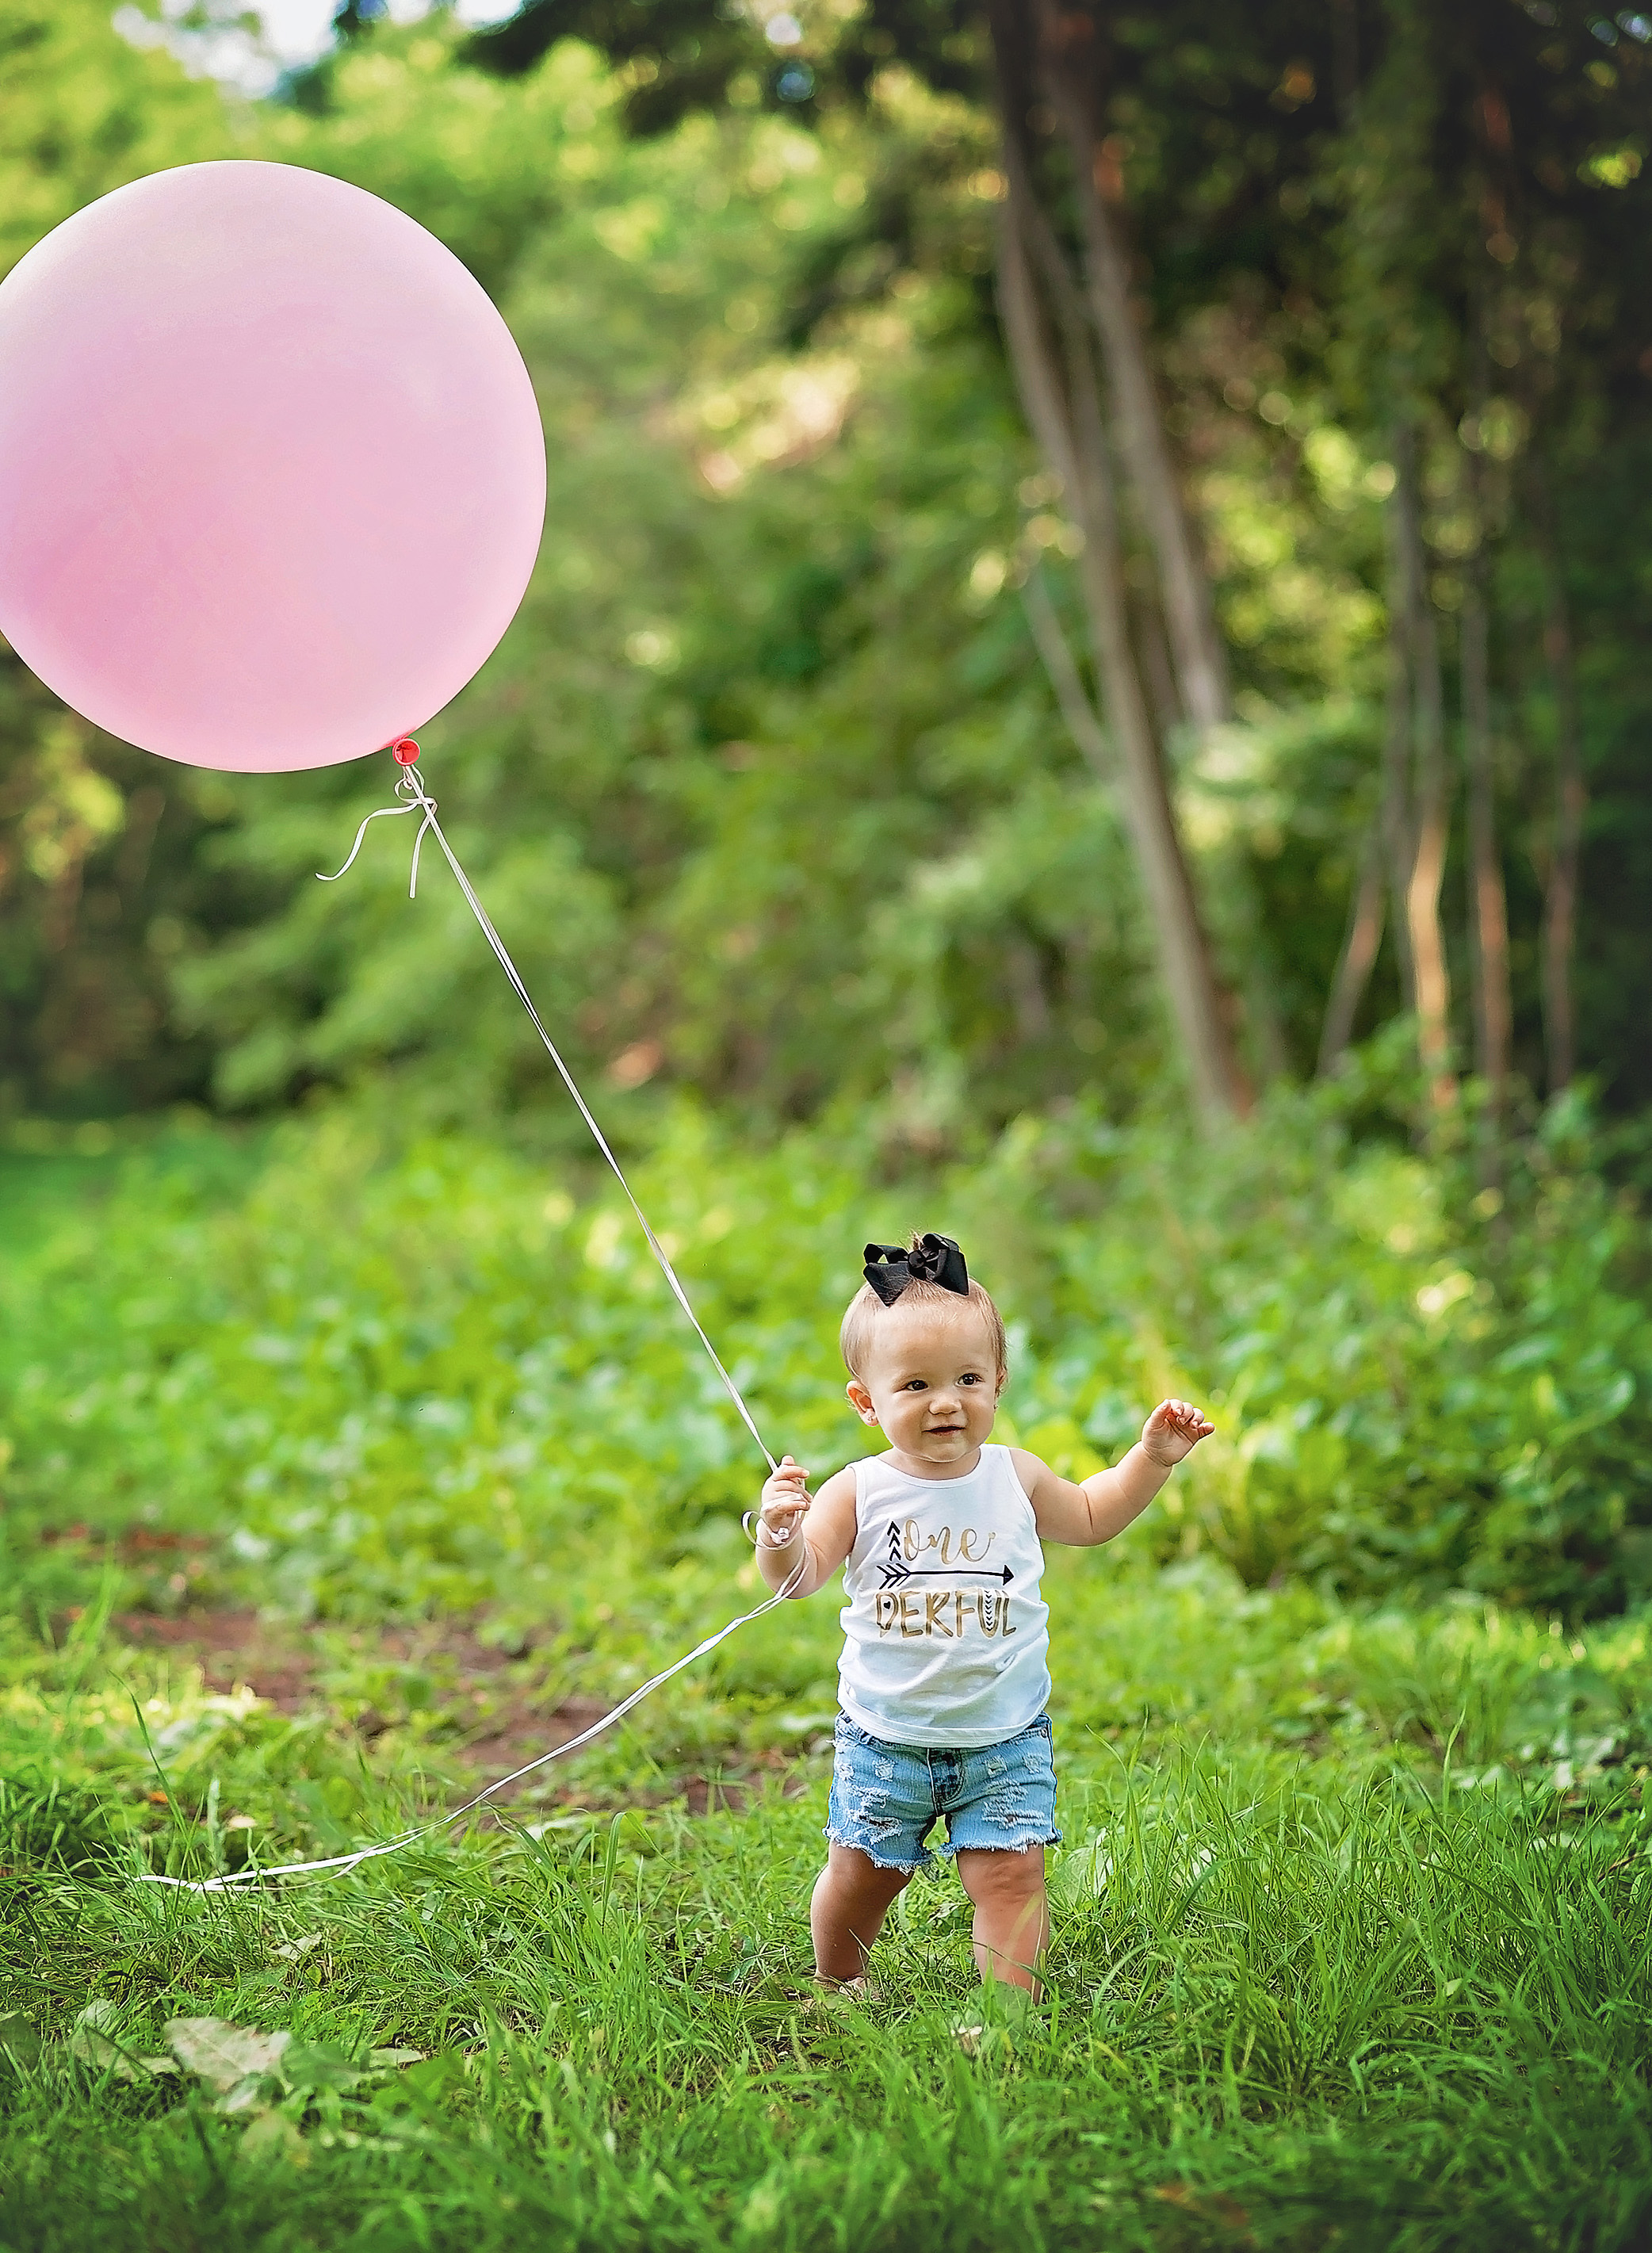 baby girl with large pink balloon